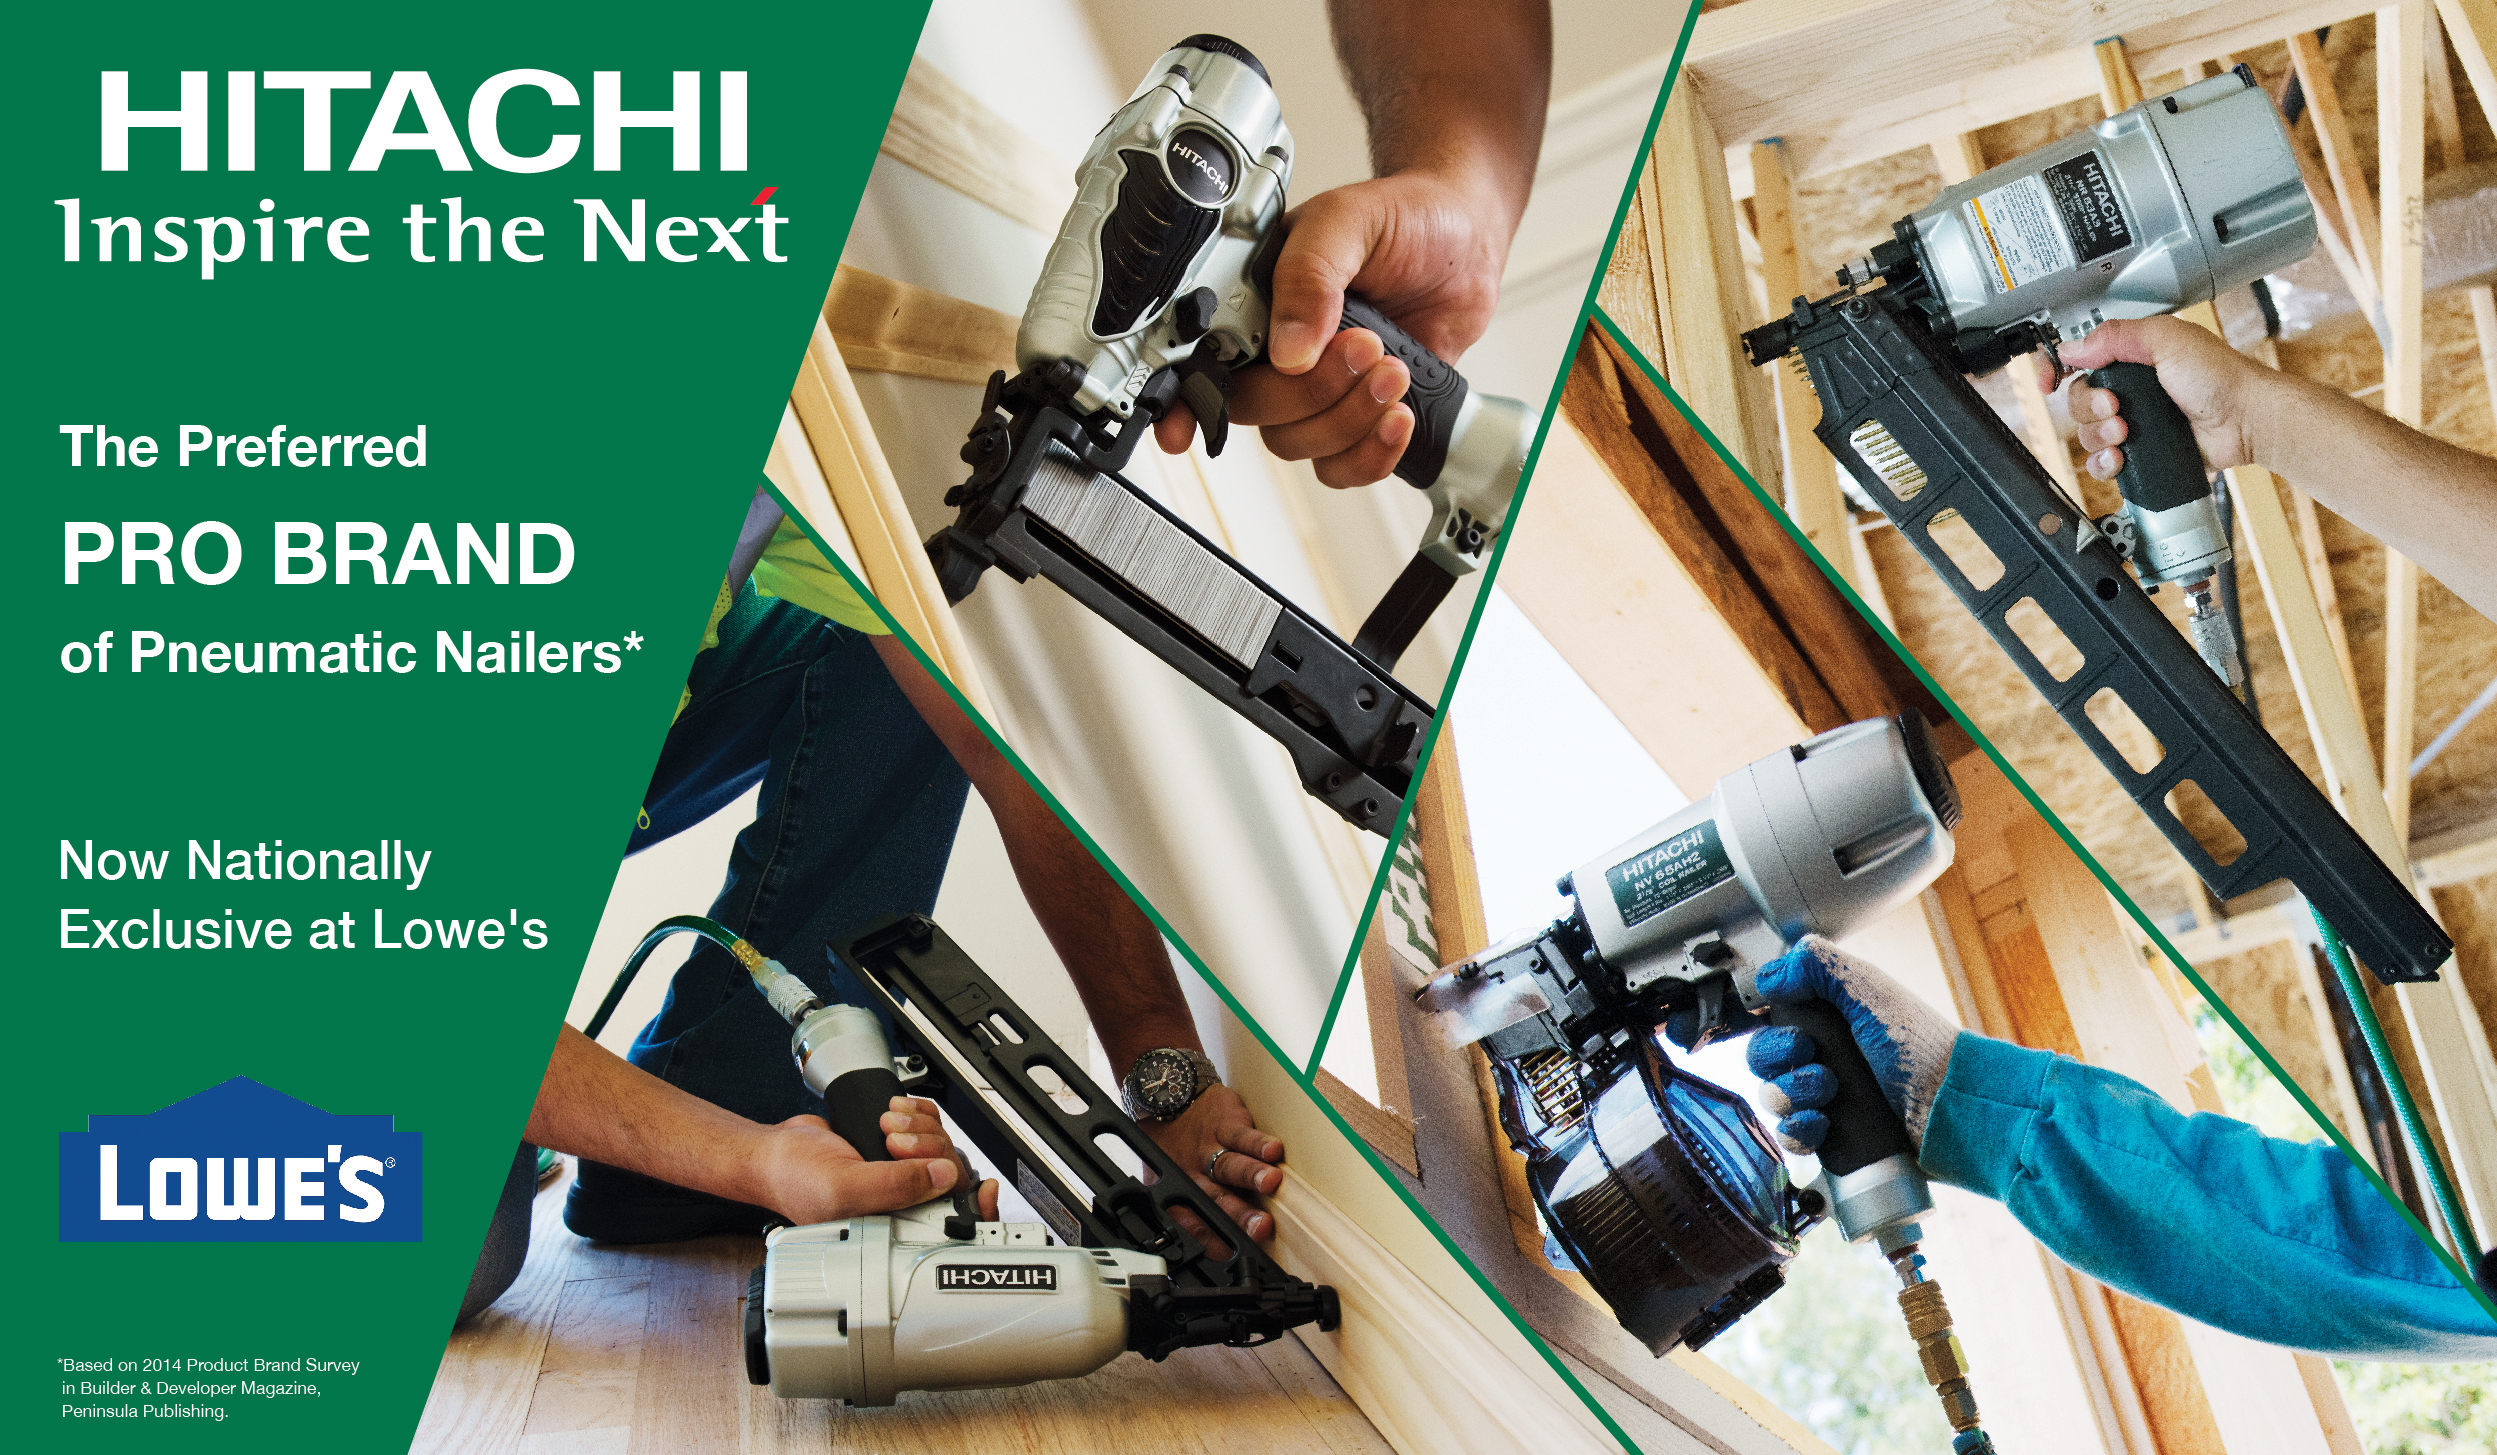 Lowes to exclusively offer hitachi power tools nationally full size greentooth Choice Image